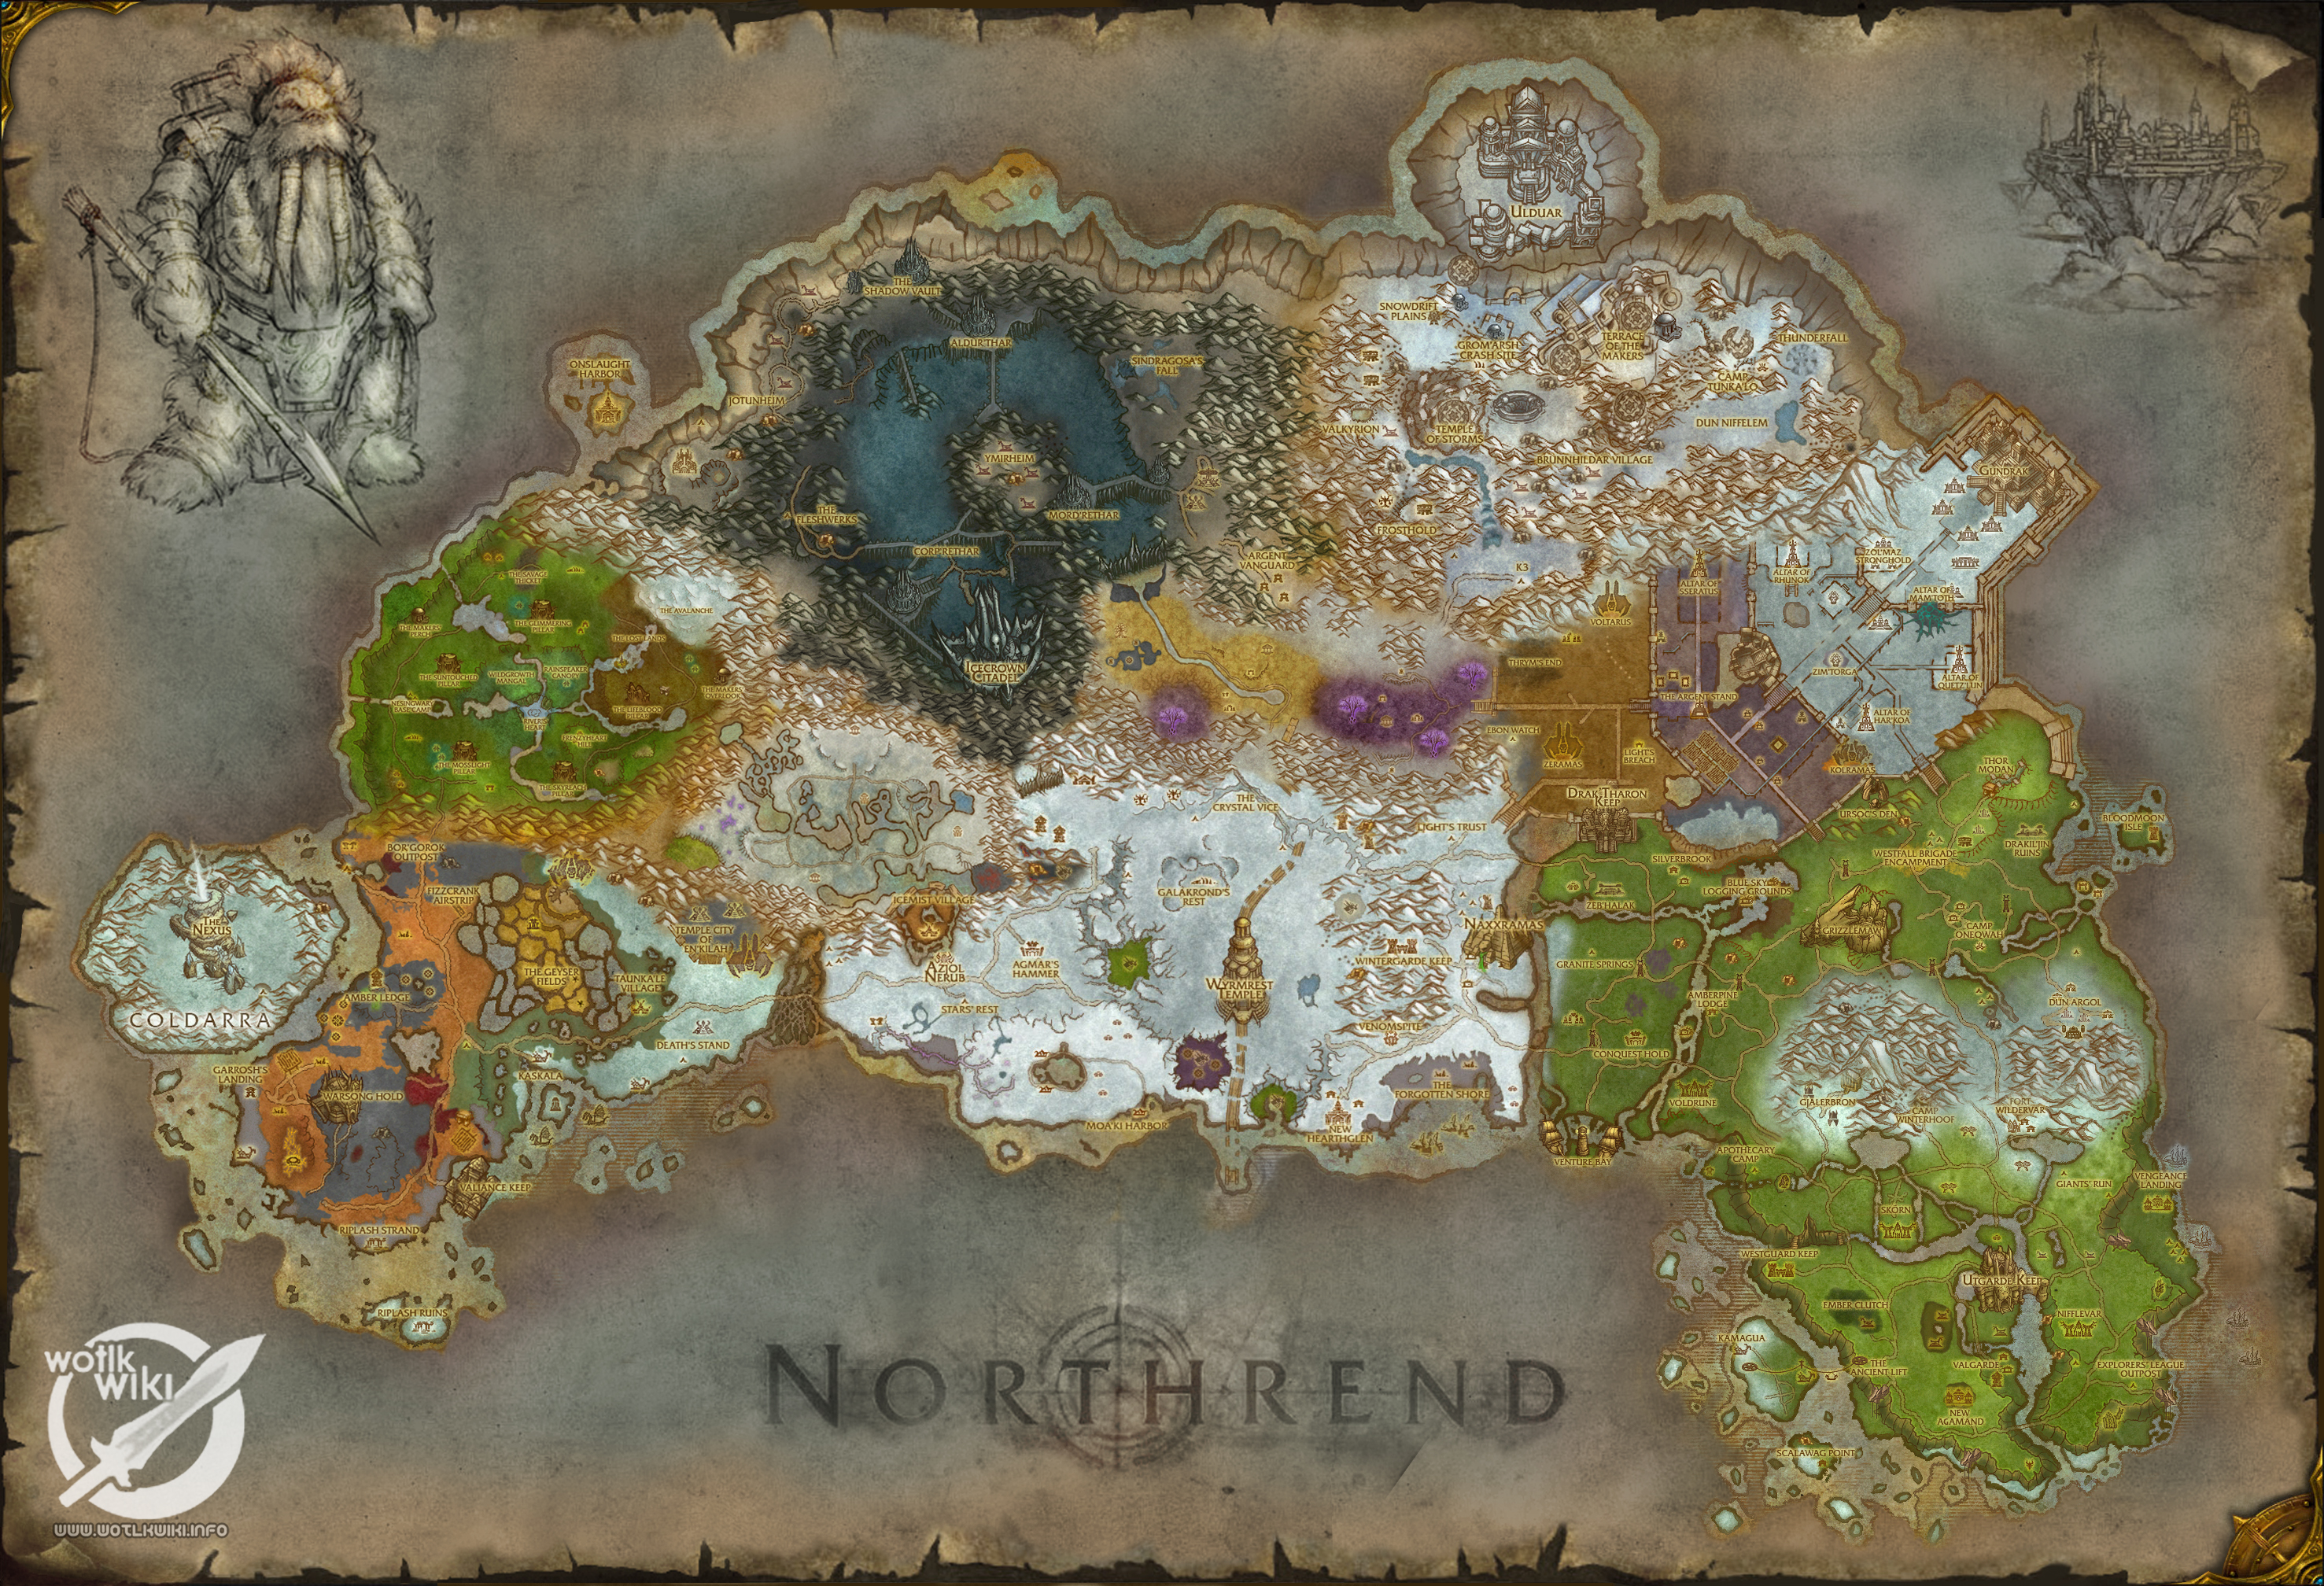 Northrend full composite map wotlkwiki free download borrow download 1 file gumiabroncs Gallery